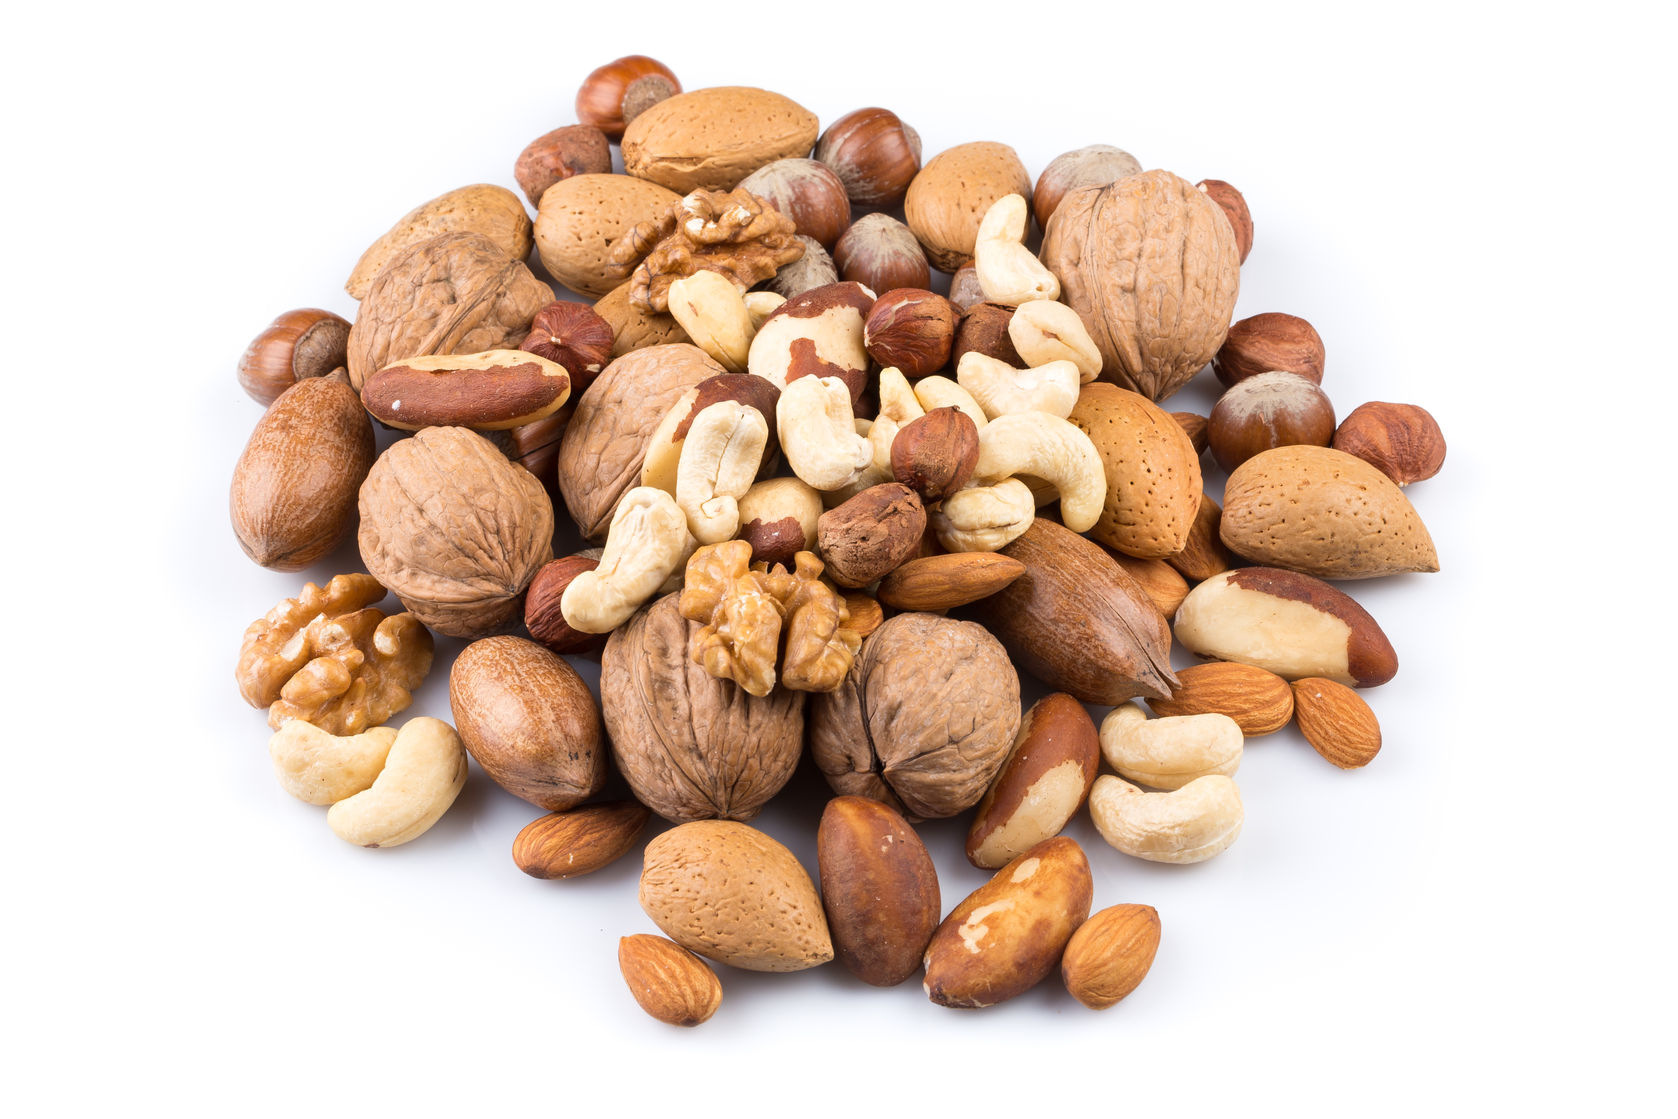 nuts-are-not-fattening-and-prevent-death-from-all-causes-including-heart-disease